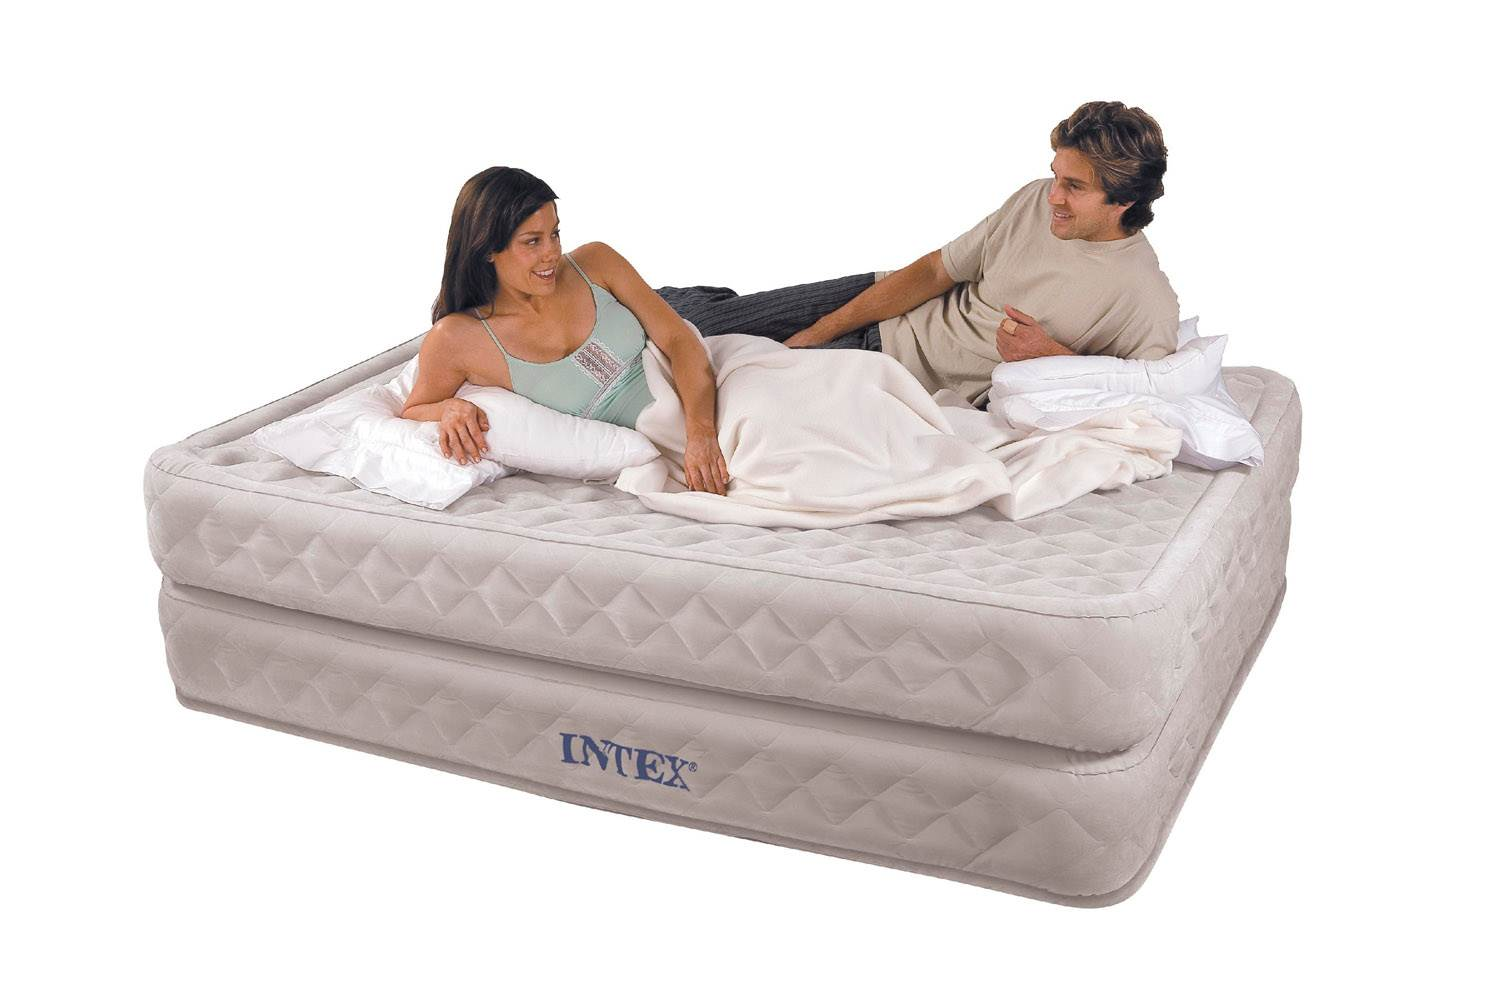 Intex Queen 20 Supreme Air Flow Airbed Mattress With Built In Pump Walmart Com Walmart Com